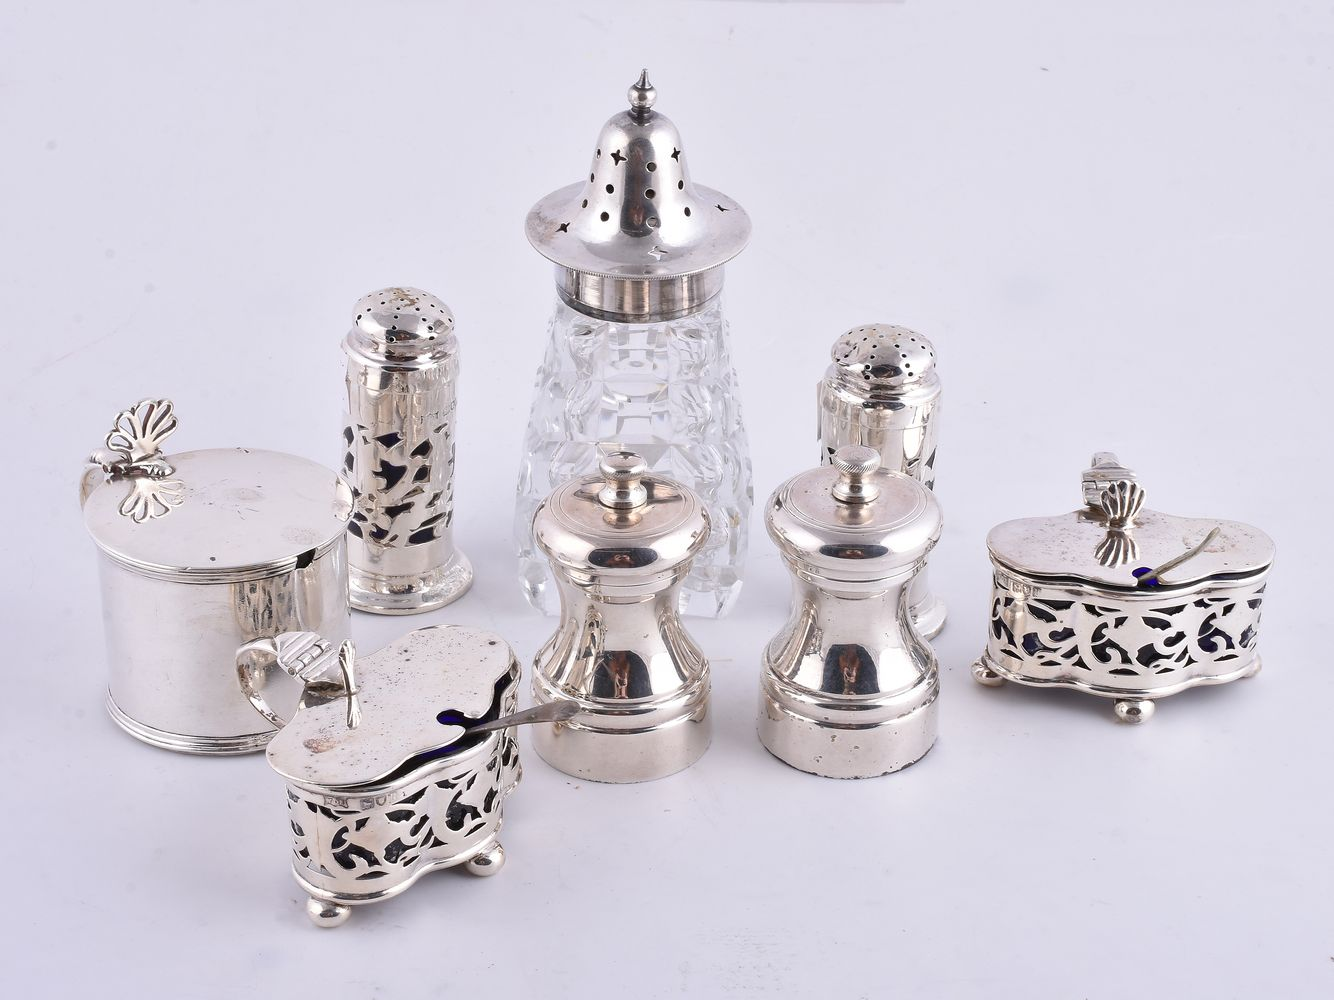 Lot 660 - A small collection of silver